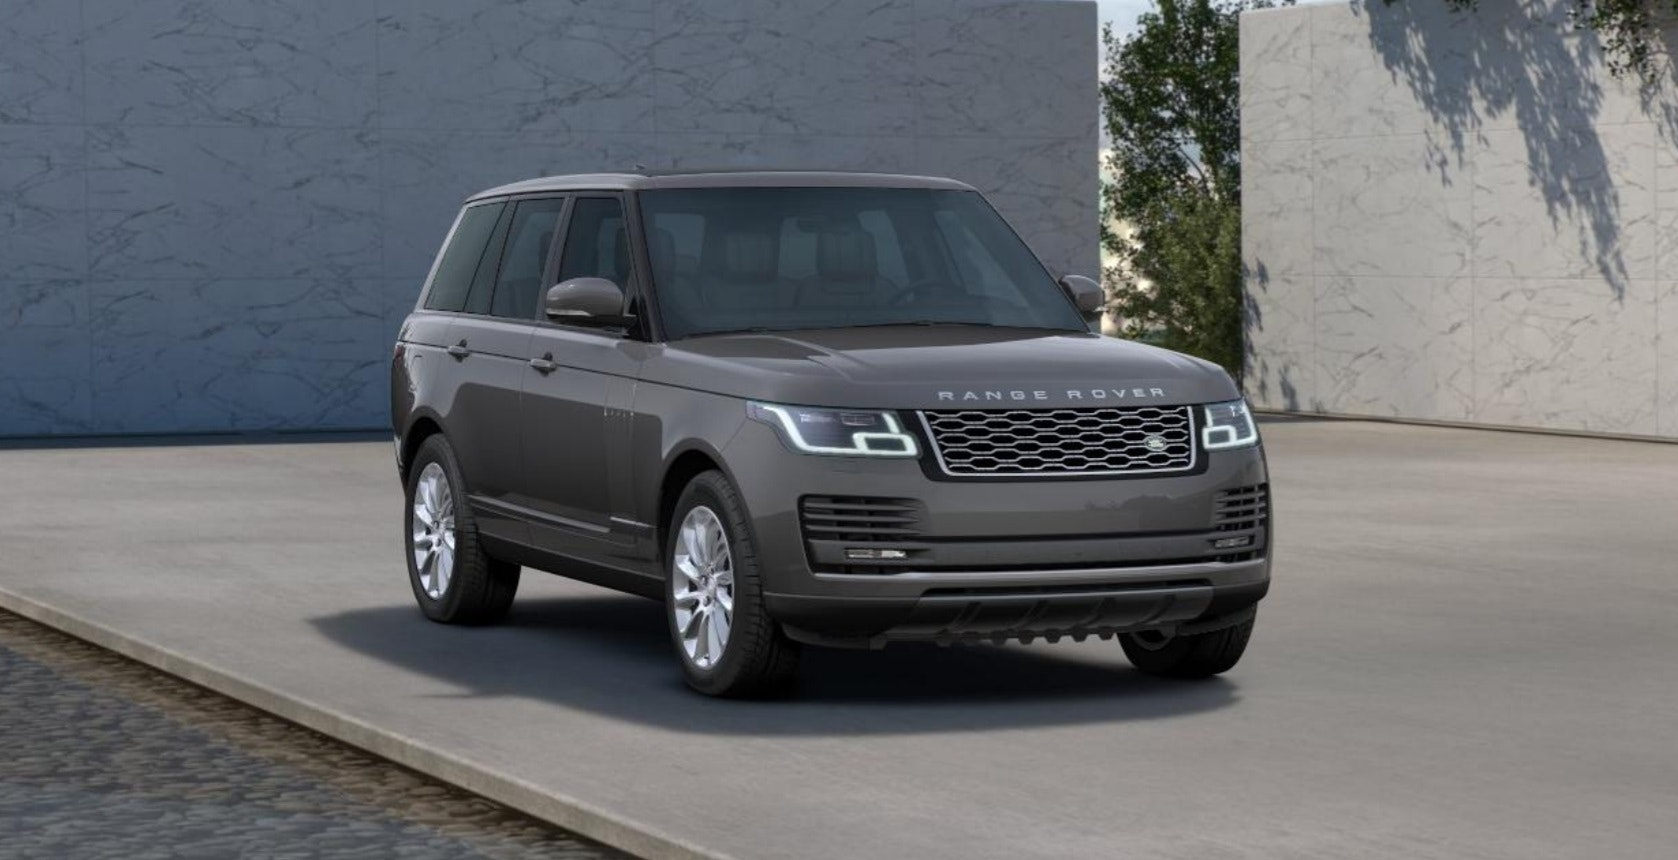 Details about  /Firenze Rosso LRC868 Land Range Rover Vernice per Ritocchi Penna Discovery Sport